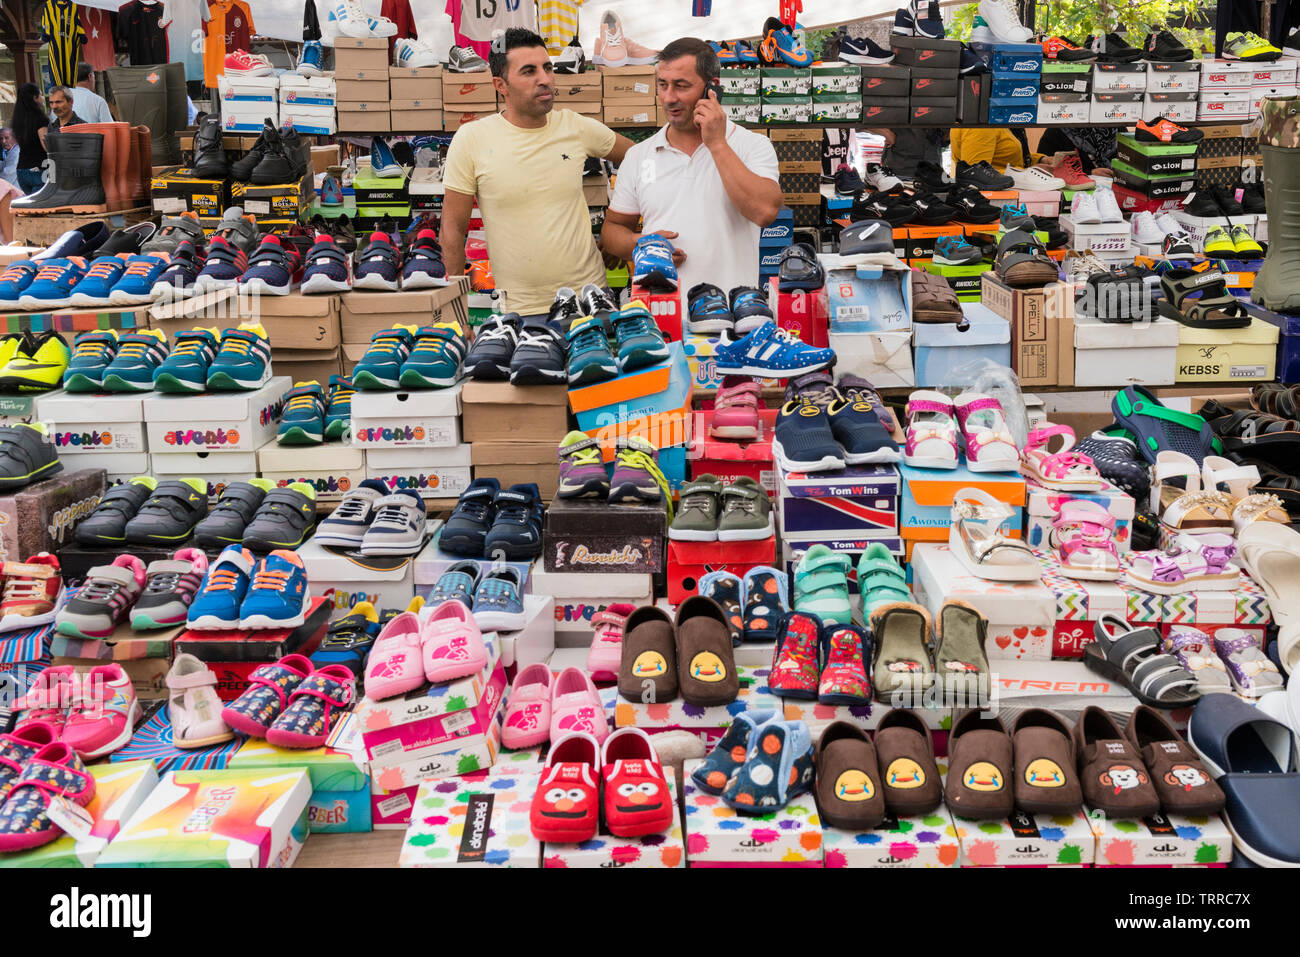 Shoe stall at the Saturday market, also known as Berivan Market, Selcuk, Turkey Stock Photo